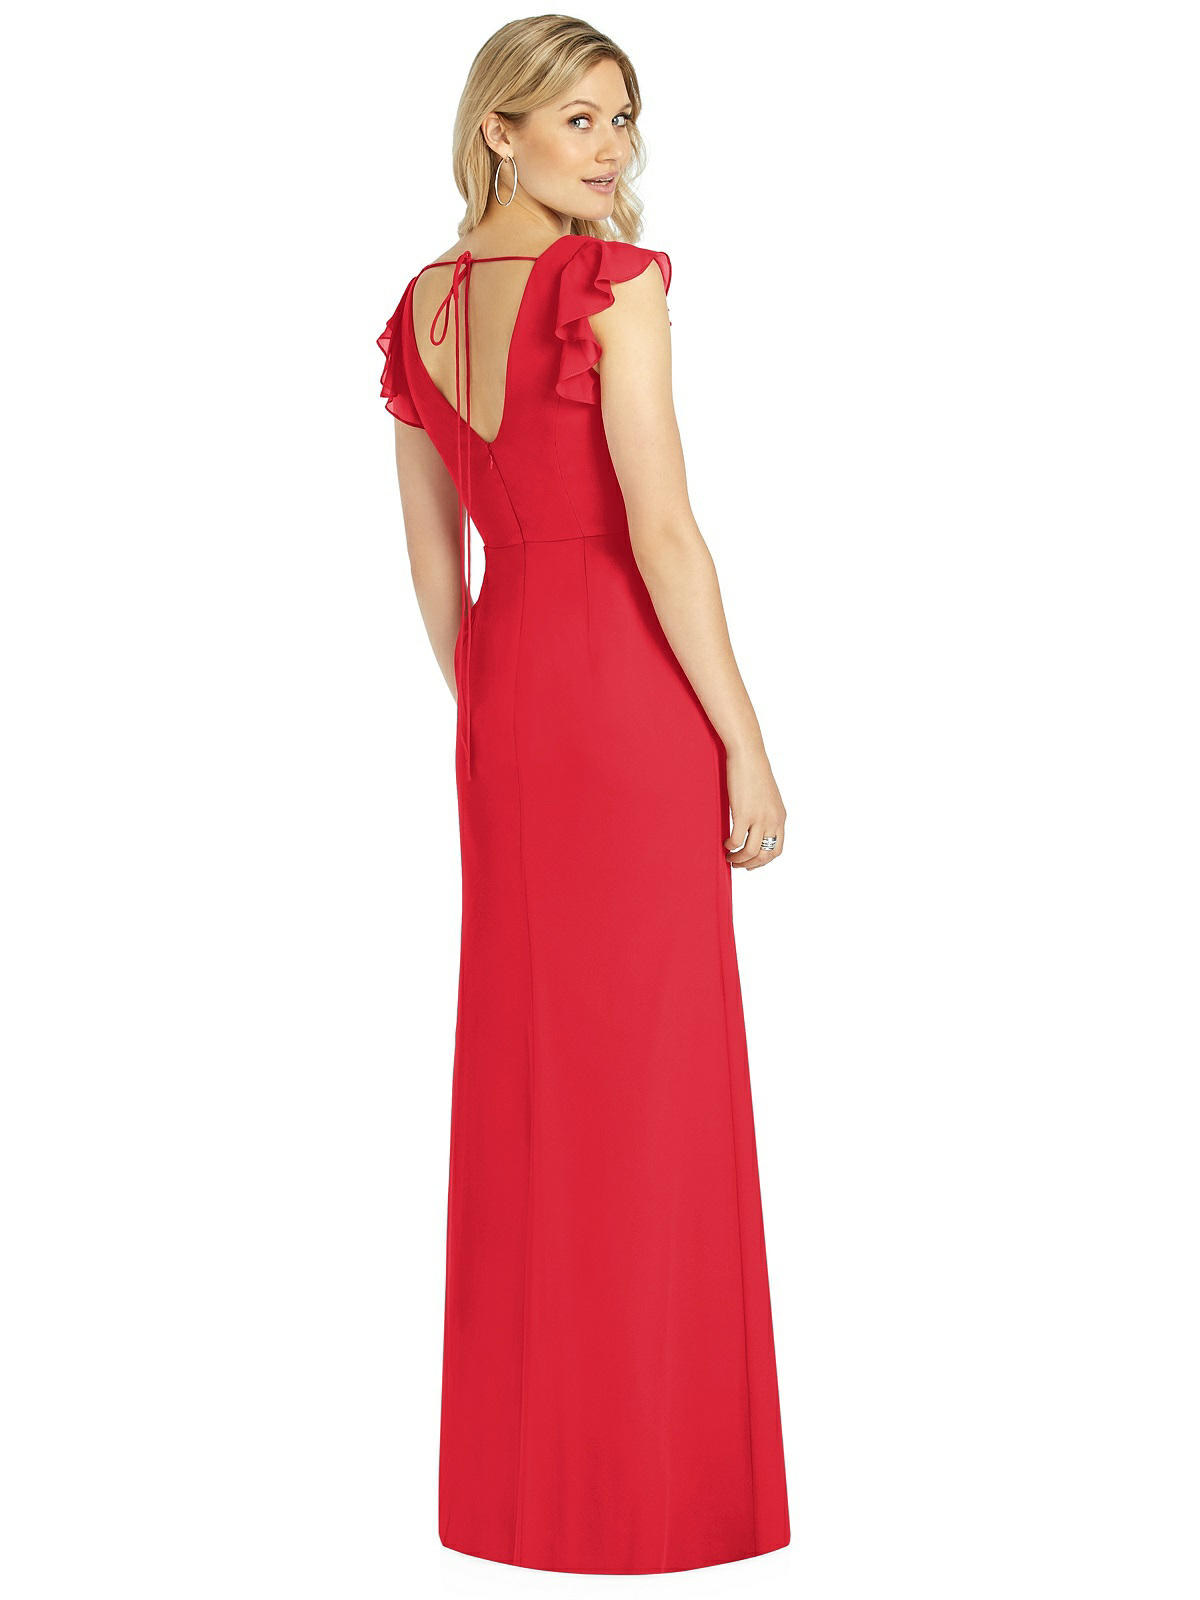 Back of 6810 in Parisian Red with tie back and ruffle detail